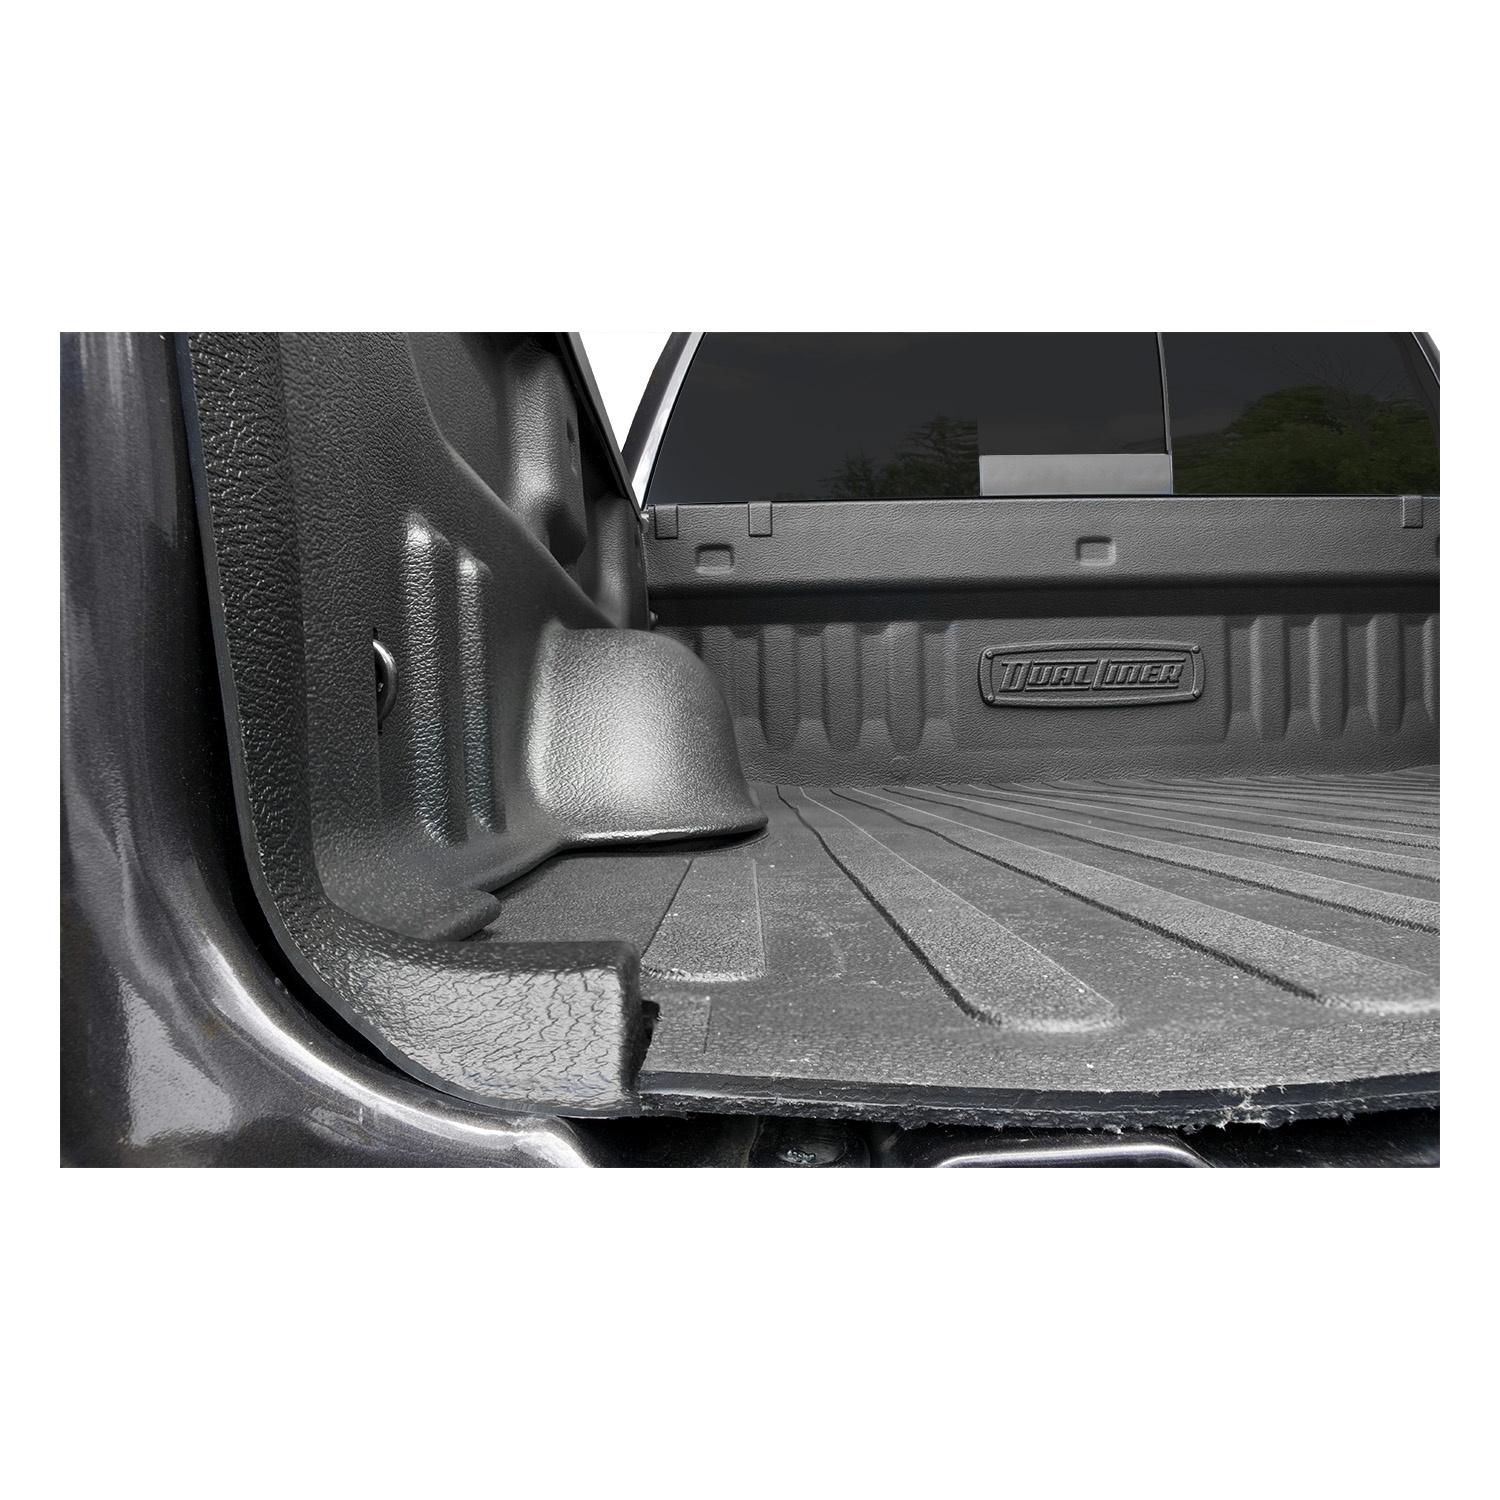 Best Truck Bedliner For A 2014-2017 GMC Sierra 1500 W/ 5'9